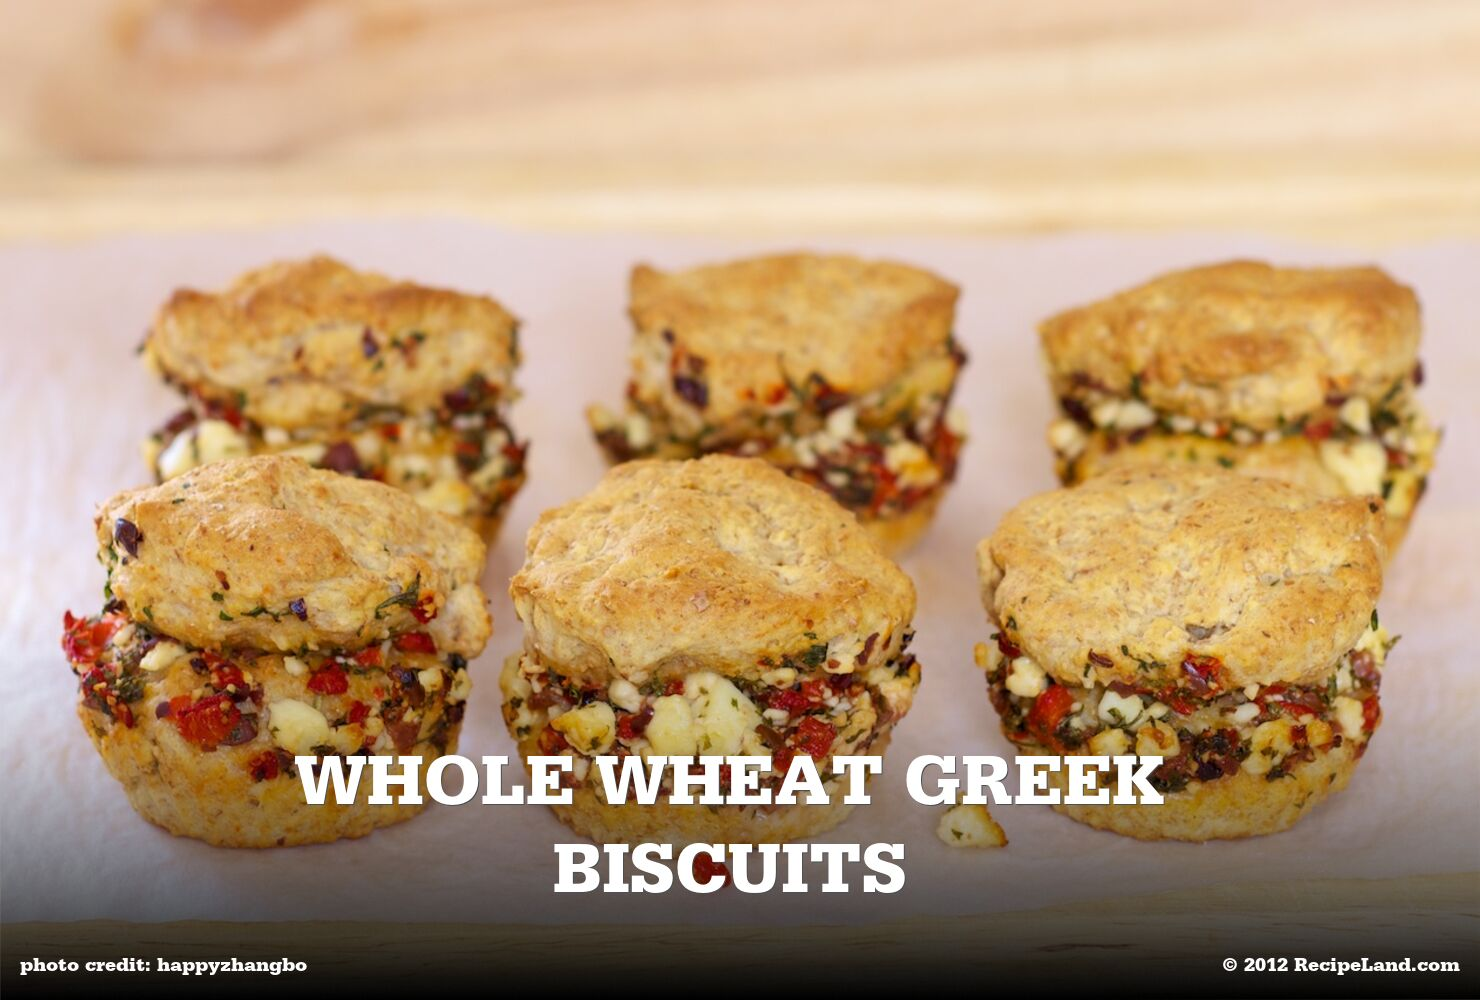 Whole Wheat Greek Biscuits